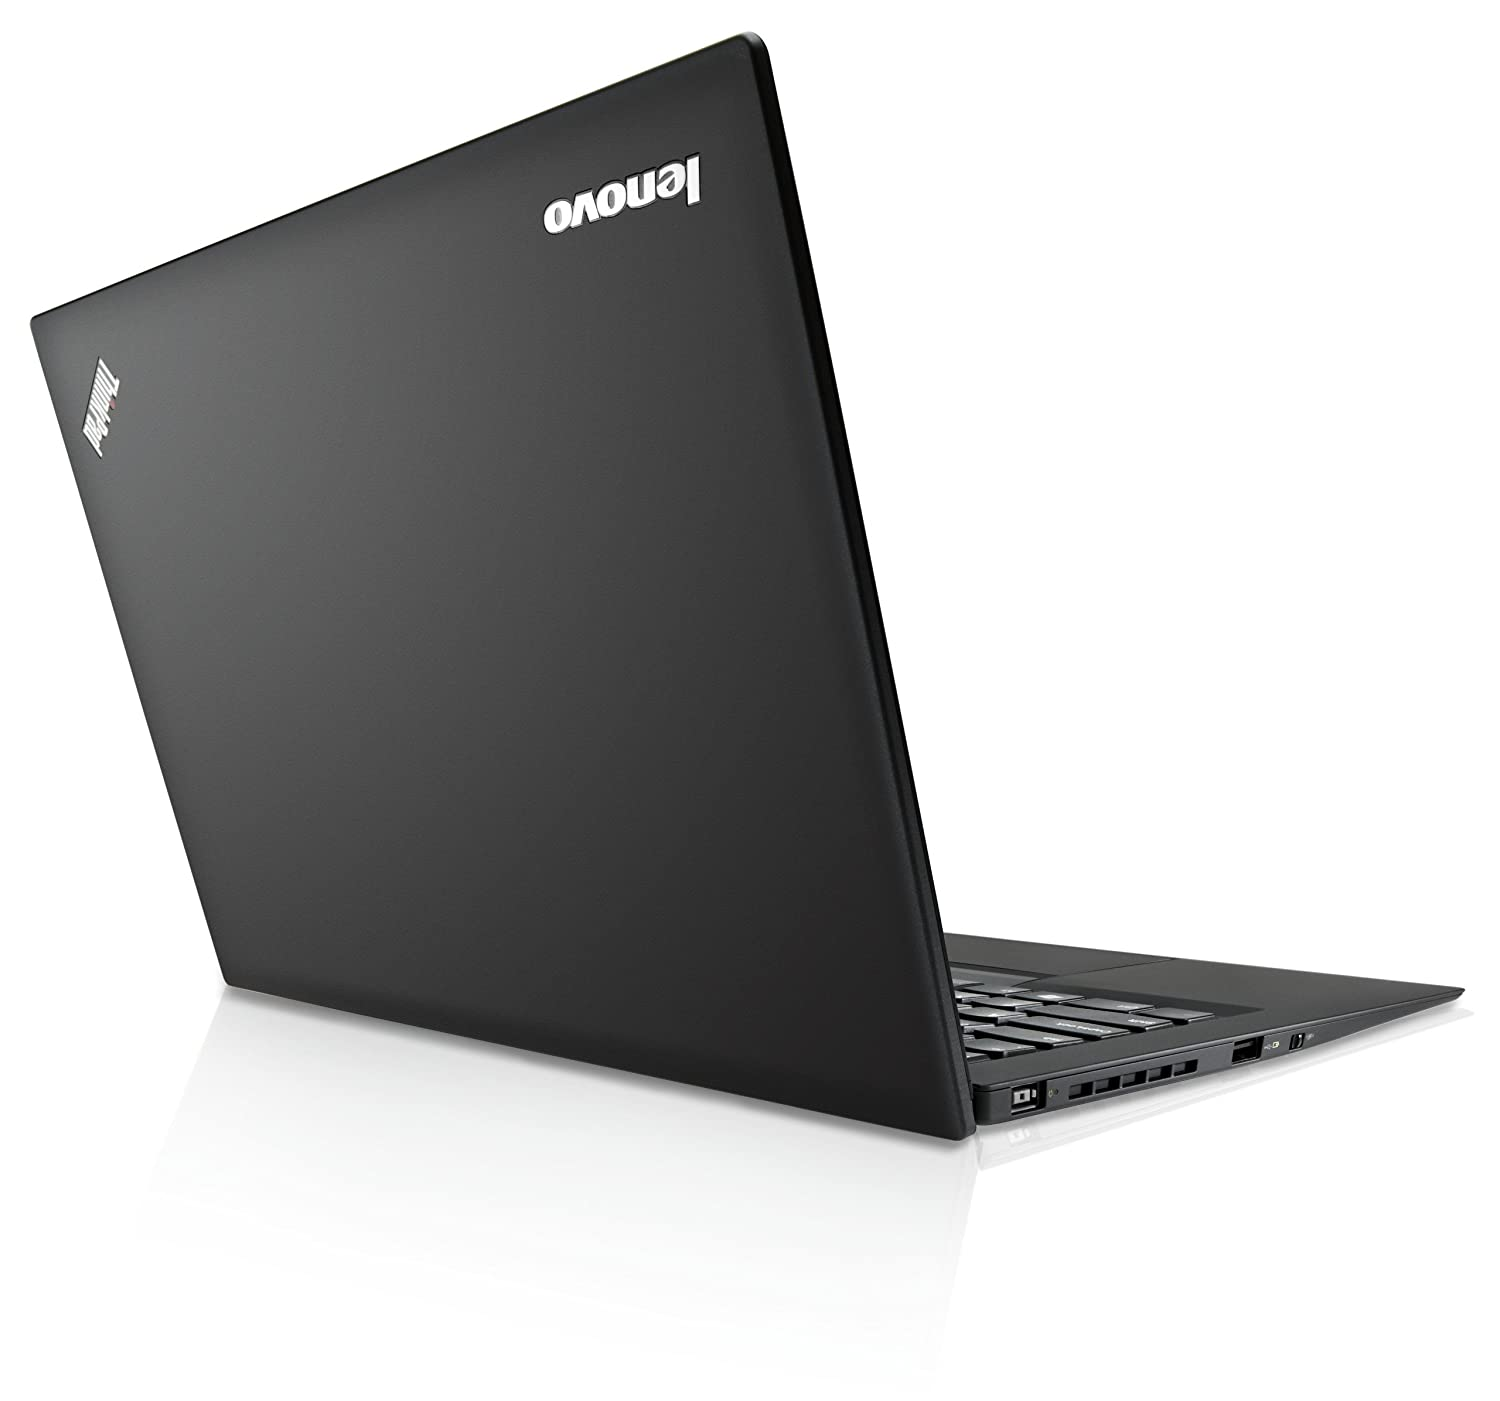 Lenovo reveals new business laptops with hot swap battery feature - Amazon Com Lenovo Thinkpad X1 Carbon 14 Inch Touchscreen Laptop Black 3444cuu Computers Accessories